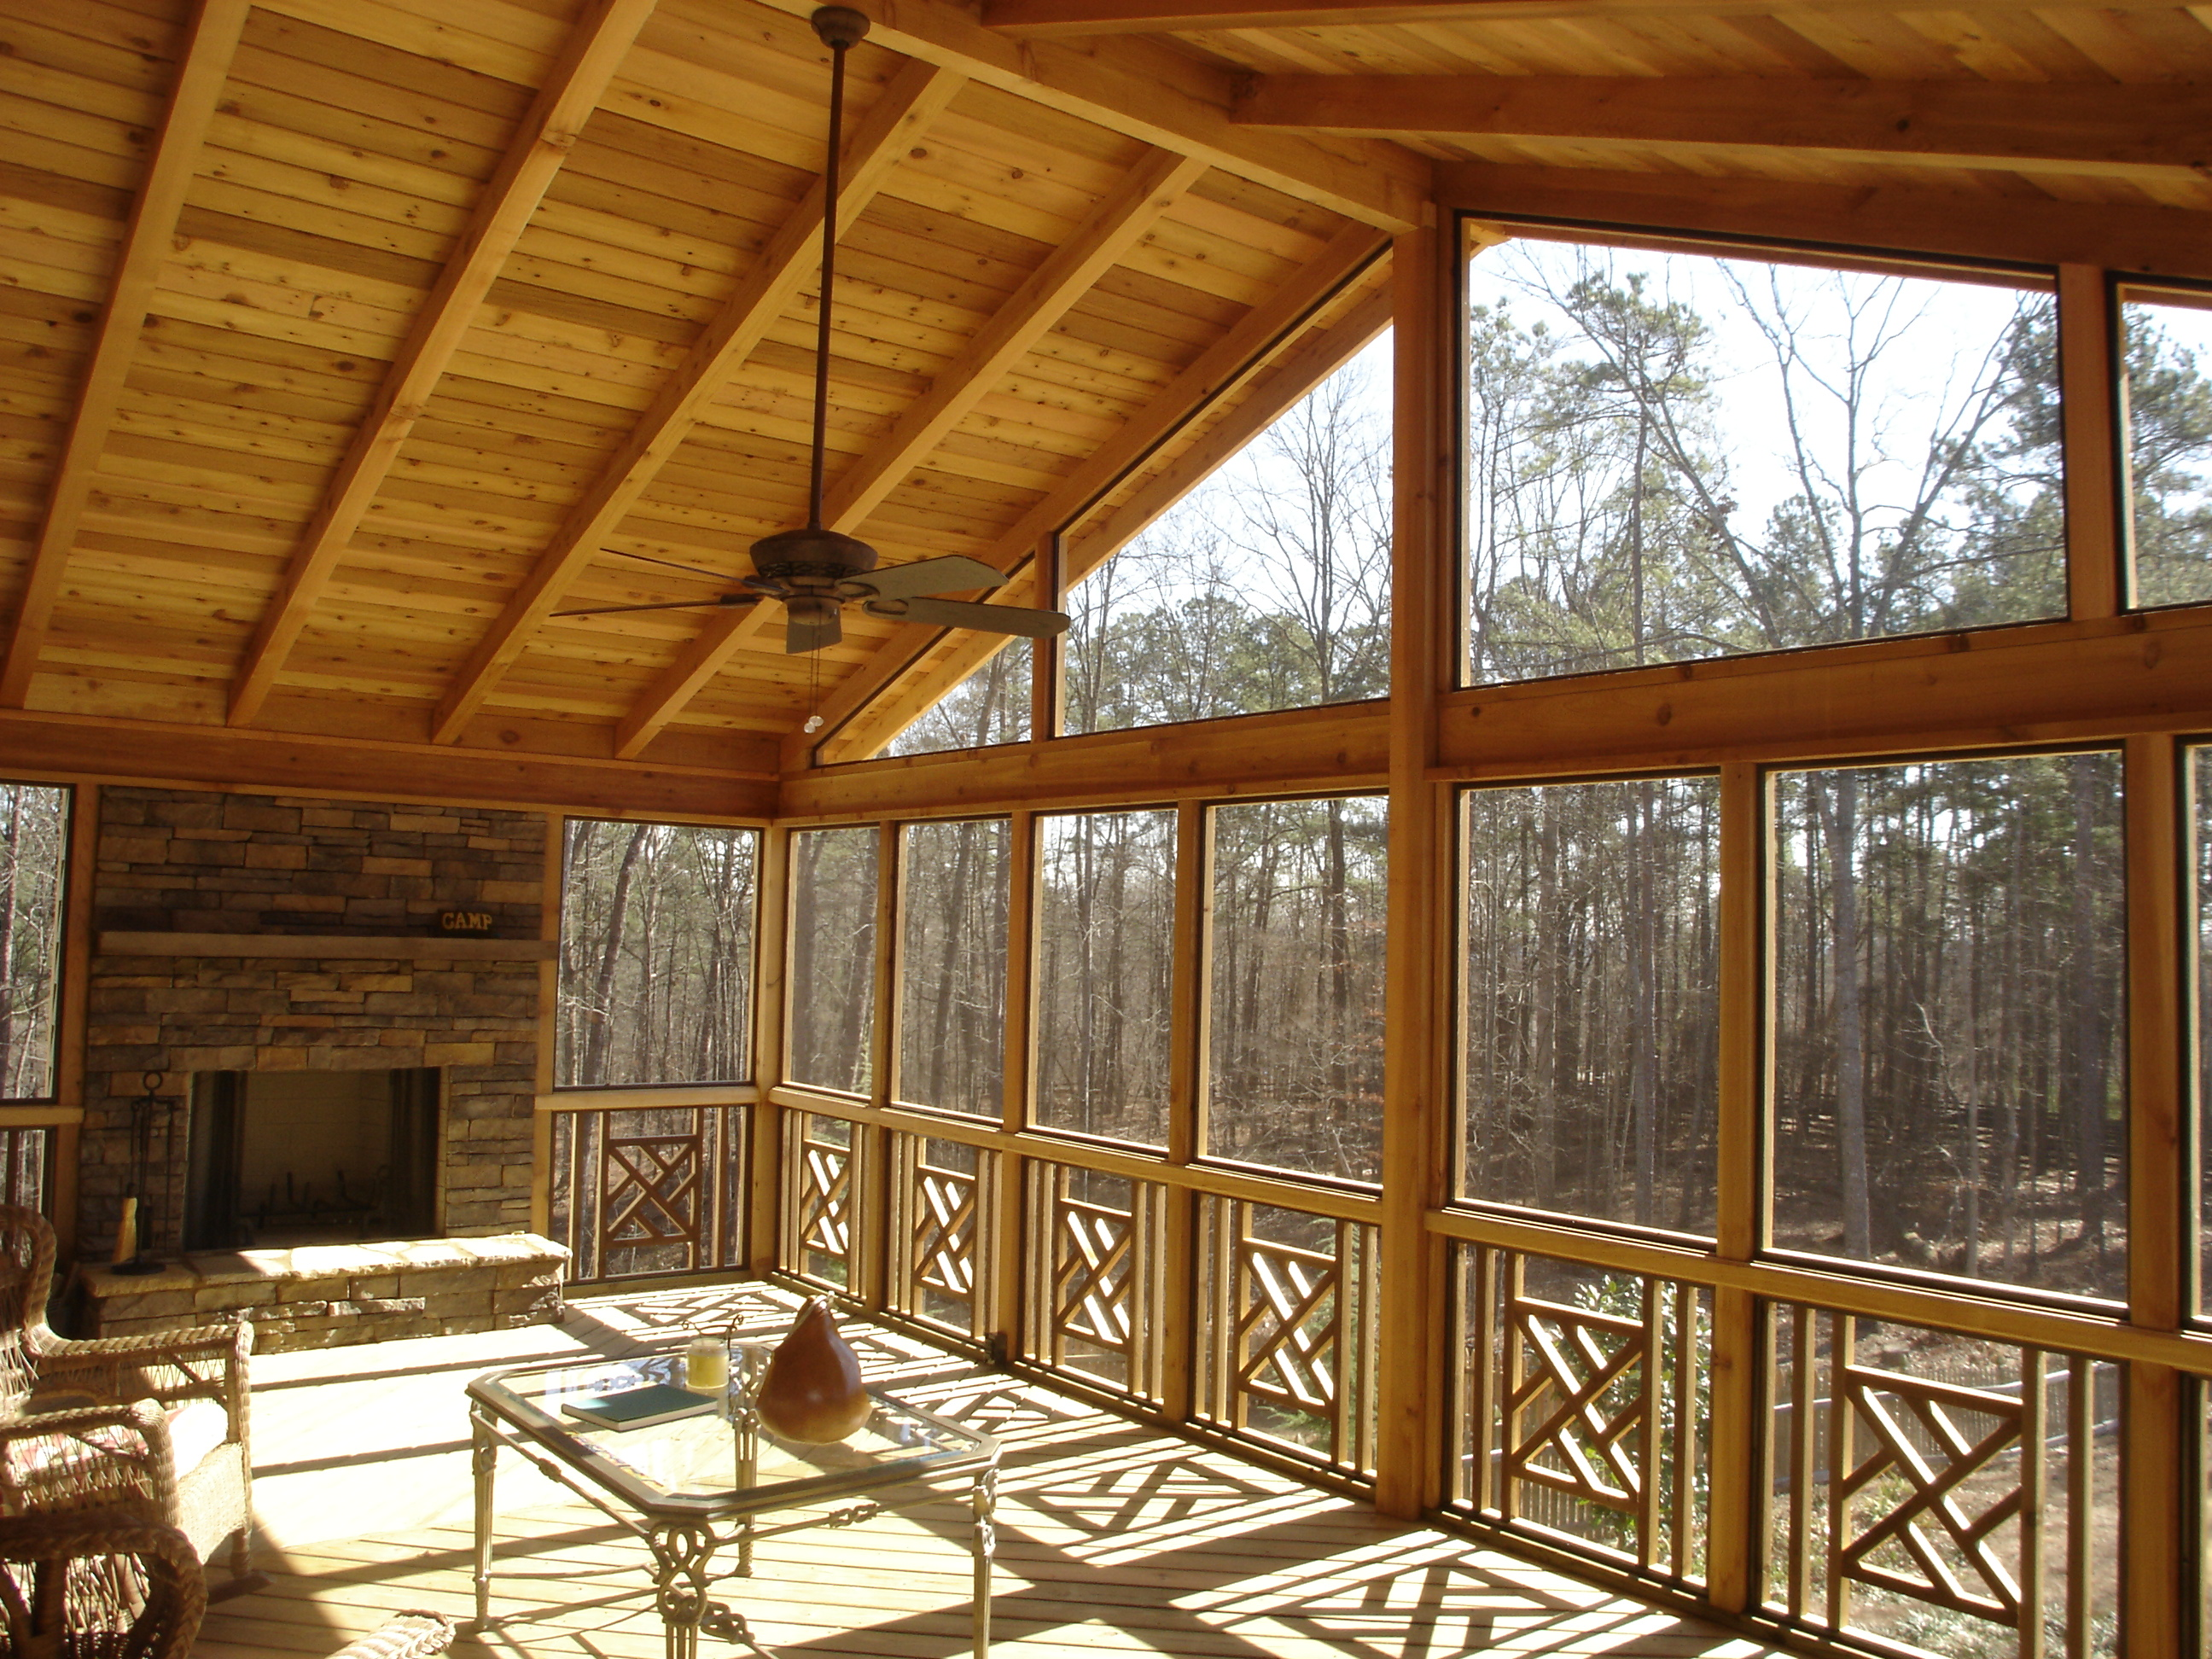 screened in porch ideas additionally screen porch roof designs - Screen Porch Ideas Designs